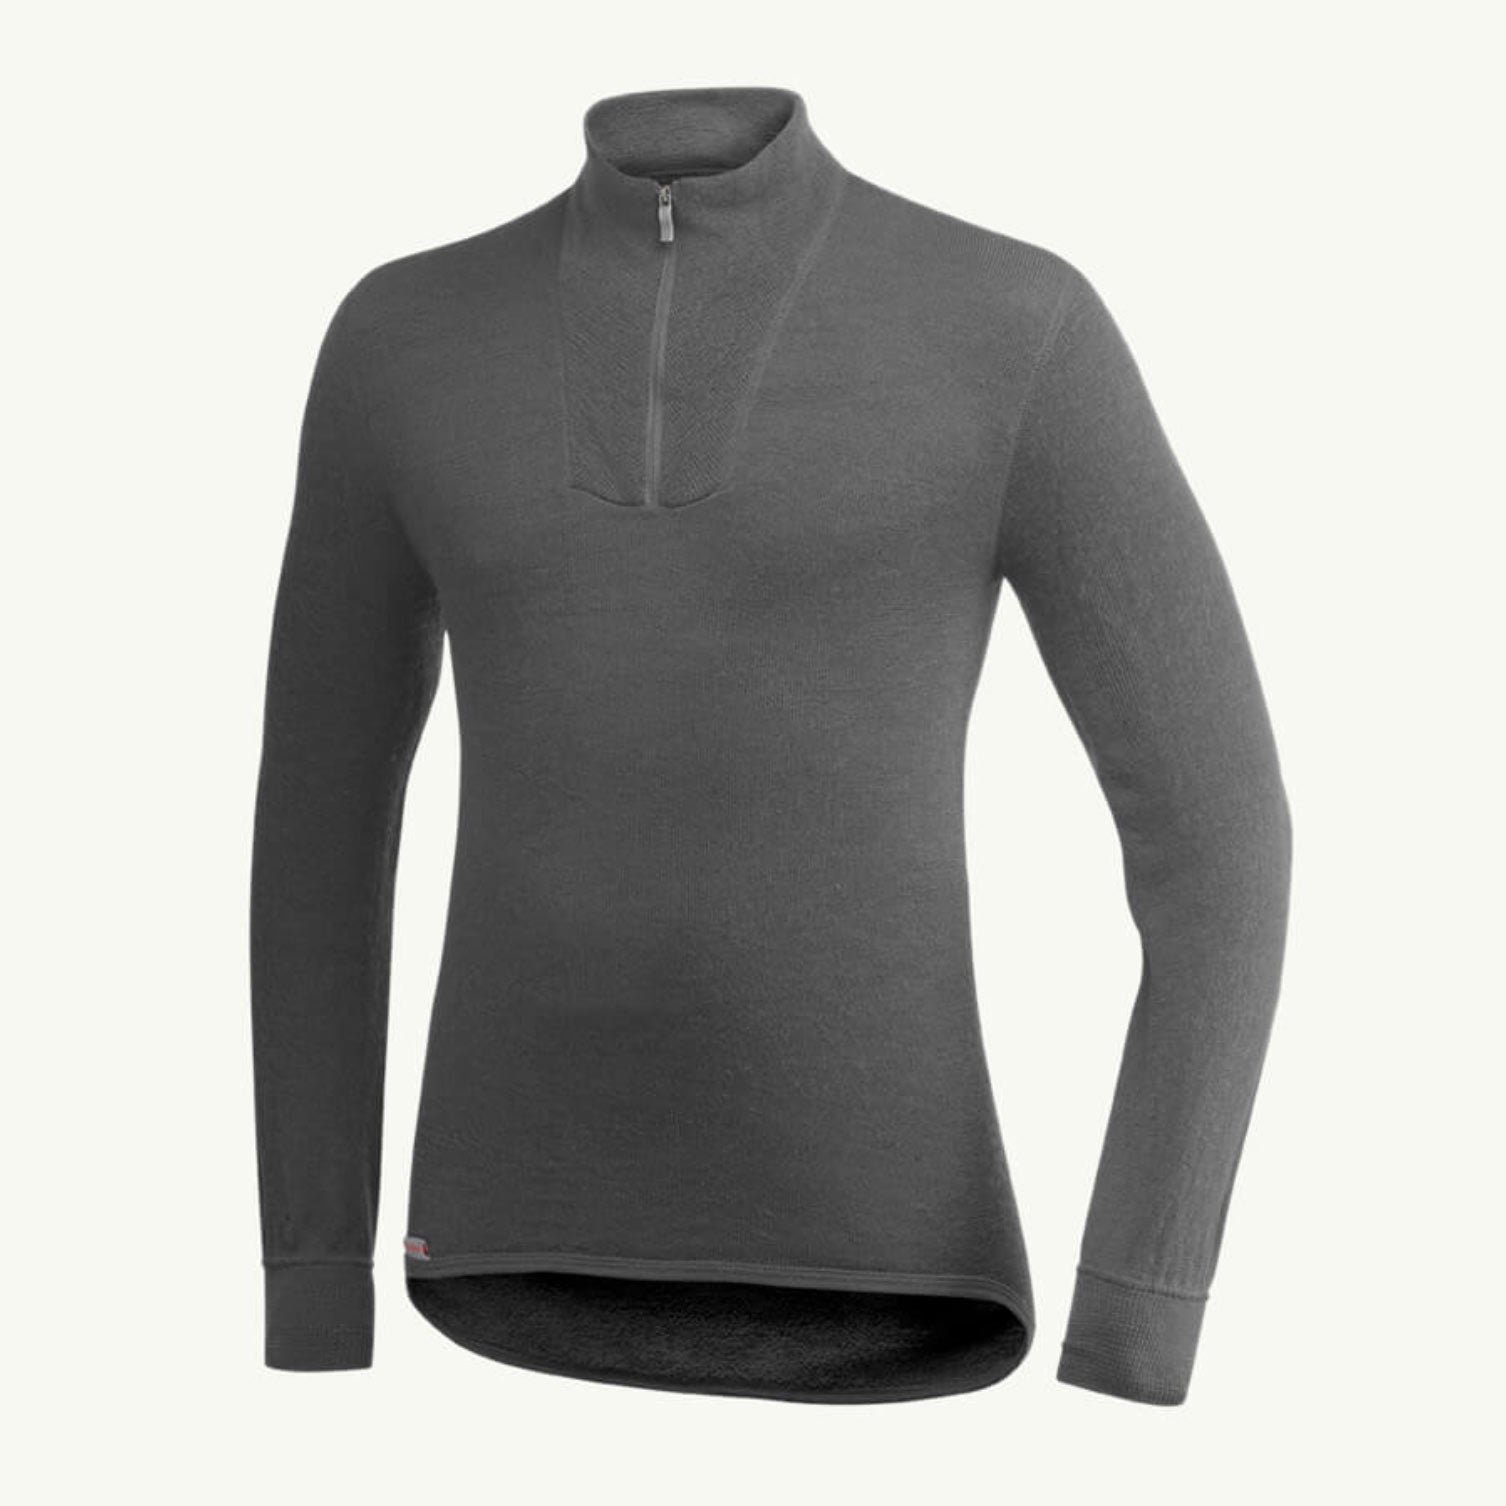 WOOLPOWER ZIP POLO 200 ULLGENSER – UNISEX – GREY